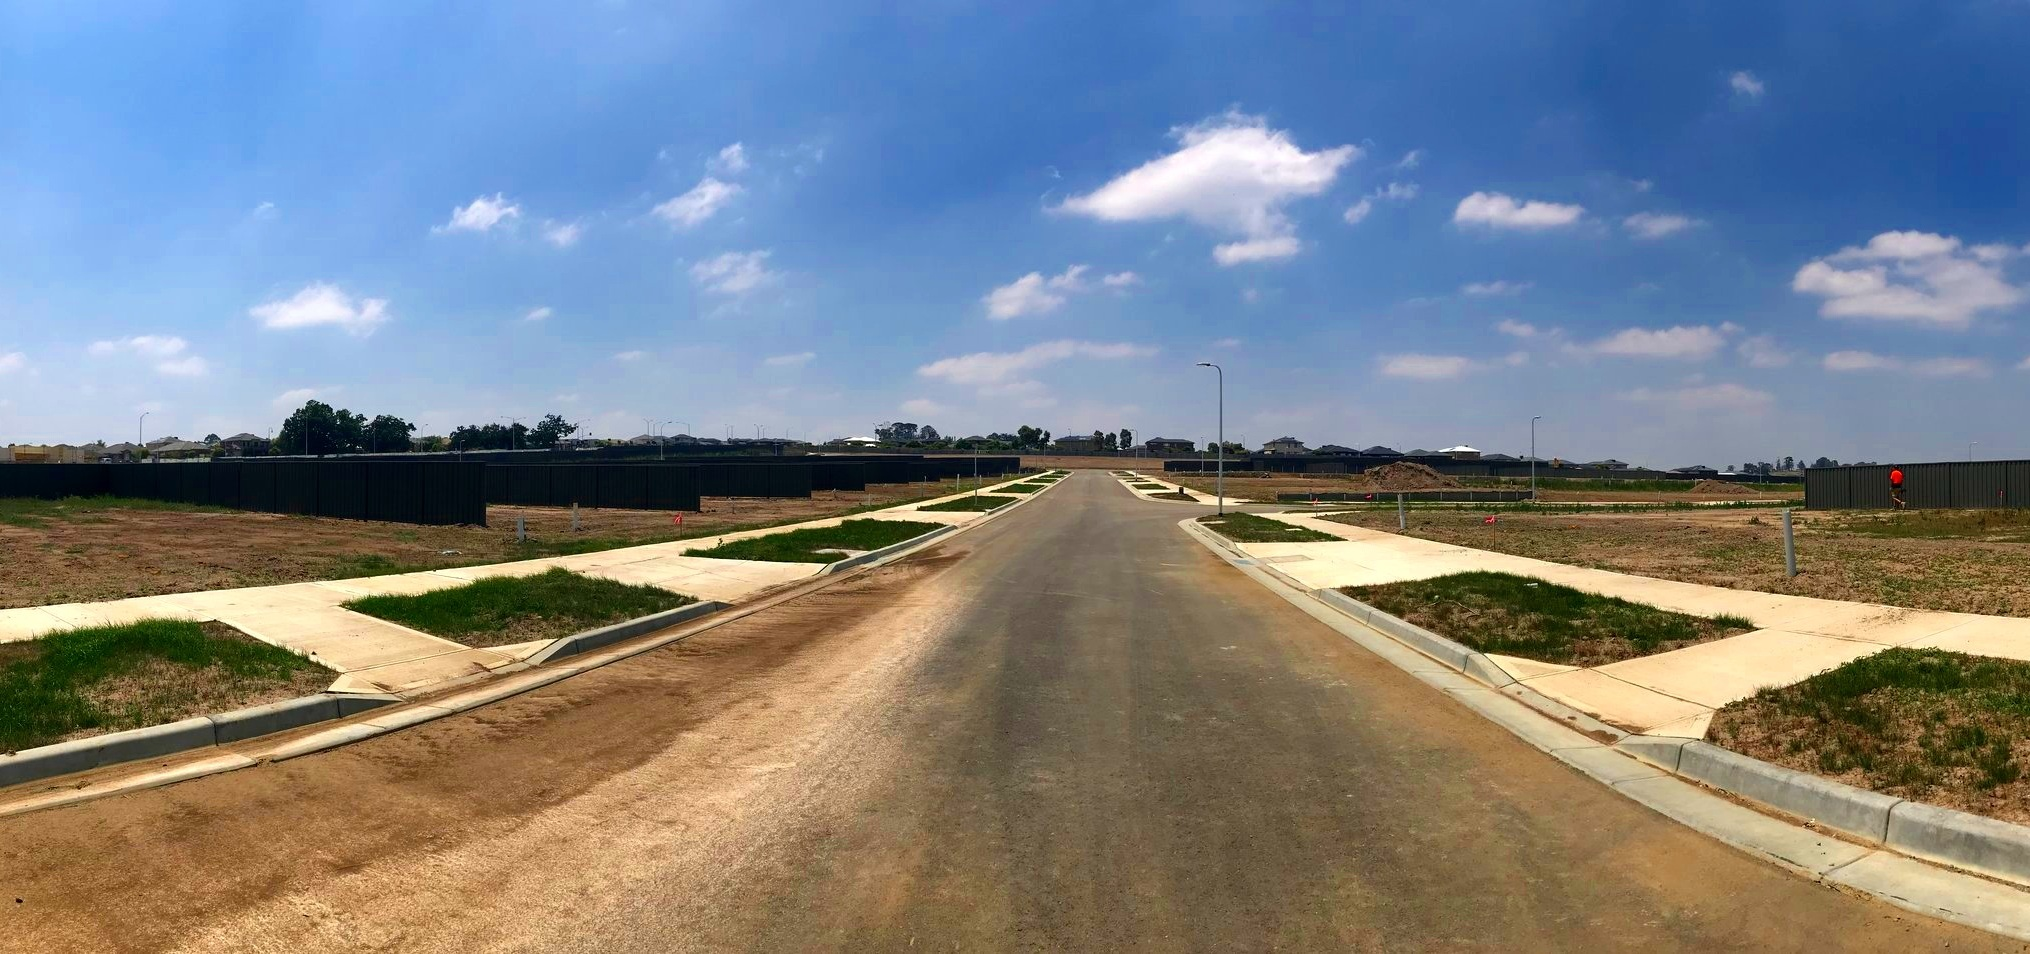 A glance up Amesbury way - 07/01/19The grass is starting to grow, whilst Amesbury Way receives its finishing touches. The last of Stage 2 fences are being erected.